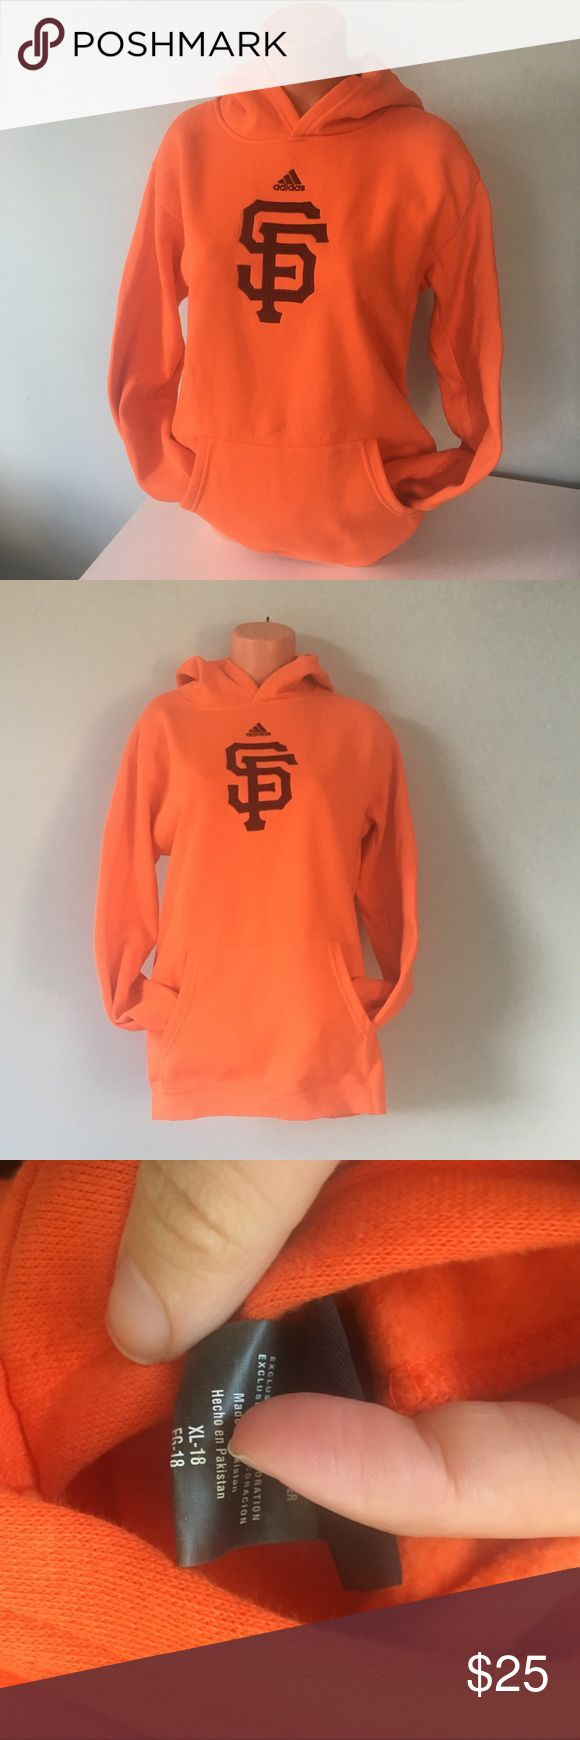 Adidas San Francisco Giants Hoodie Kids XL/Adult S Orange SF Giants Long Sleeve Sweatshirt. I am typically a Small and it fits me. Size on tag is kids XL. Only worn a couple times. adidas Shirts & Tops Sweatshirts & Hoodies